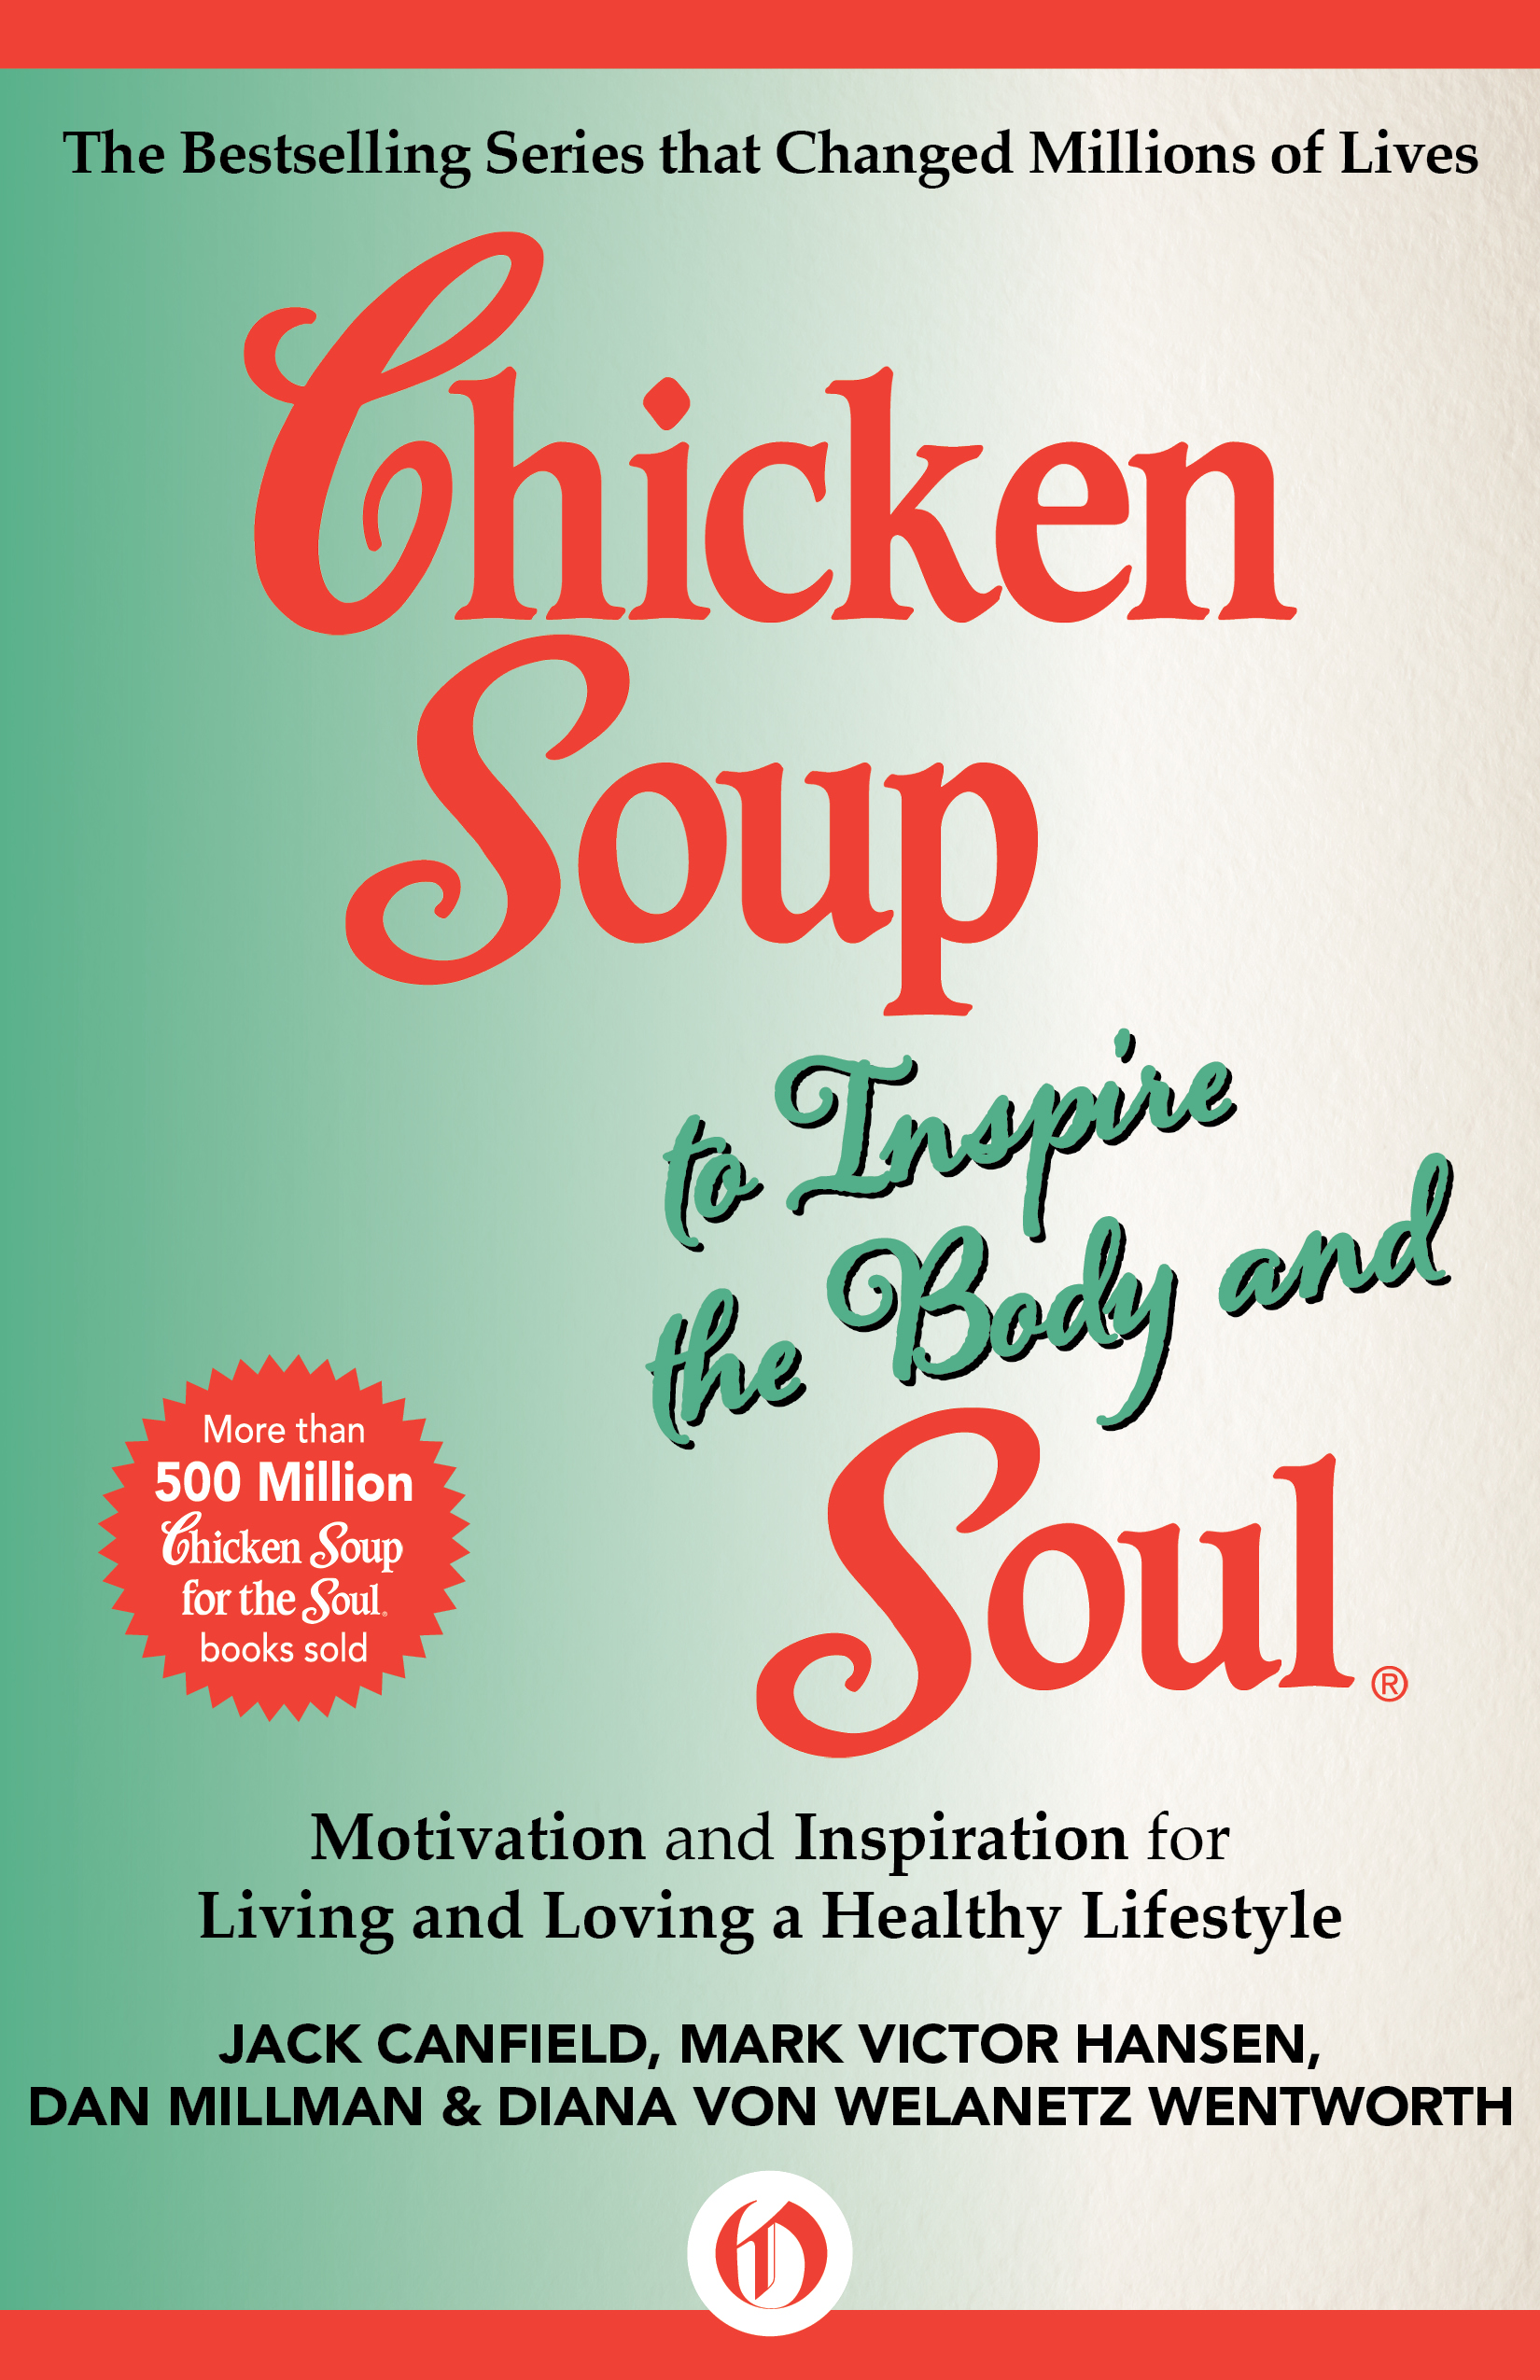 Chicken Soup to Inspire the Body and Soul